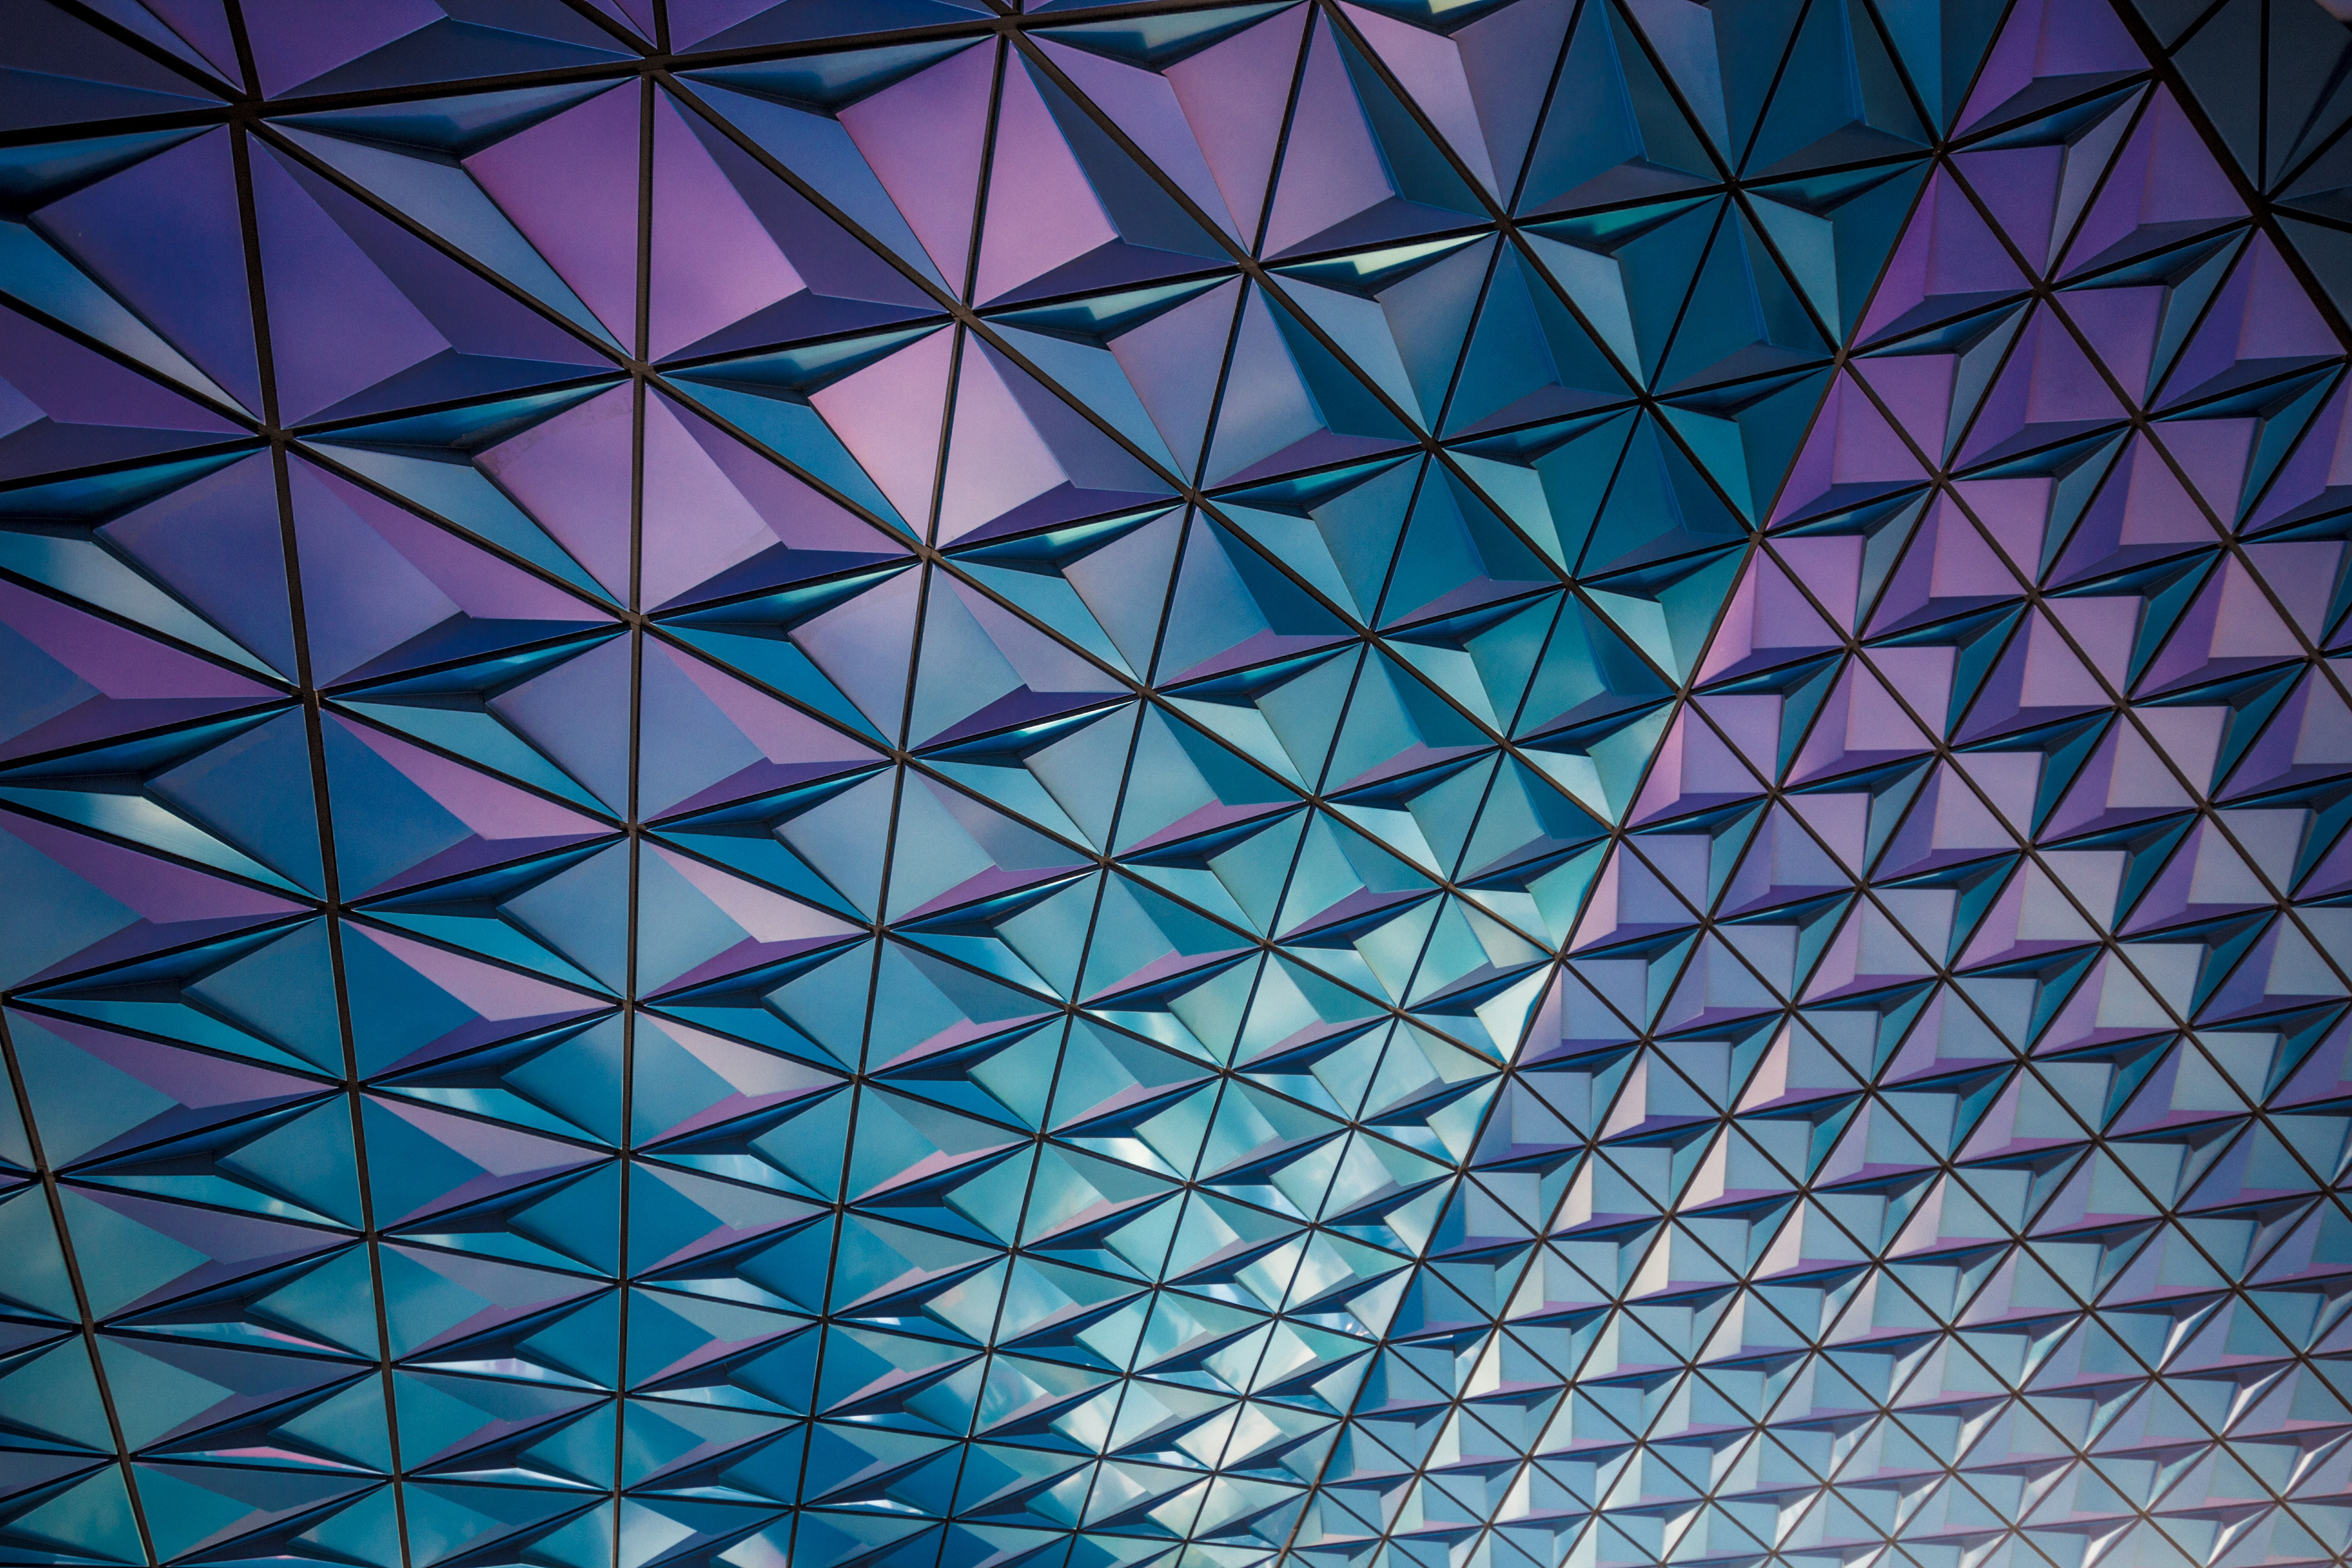 5 Days Of Awesome Wallpapers Geometric And Architectural